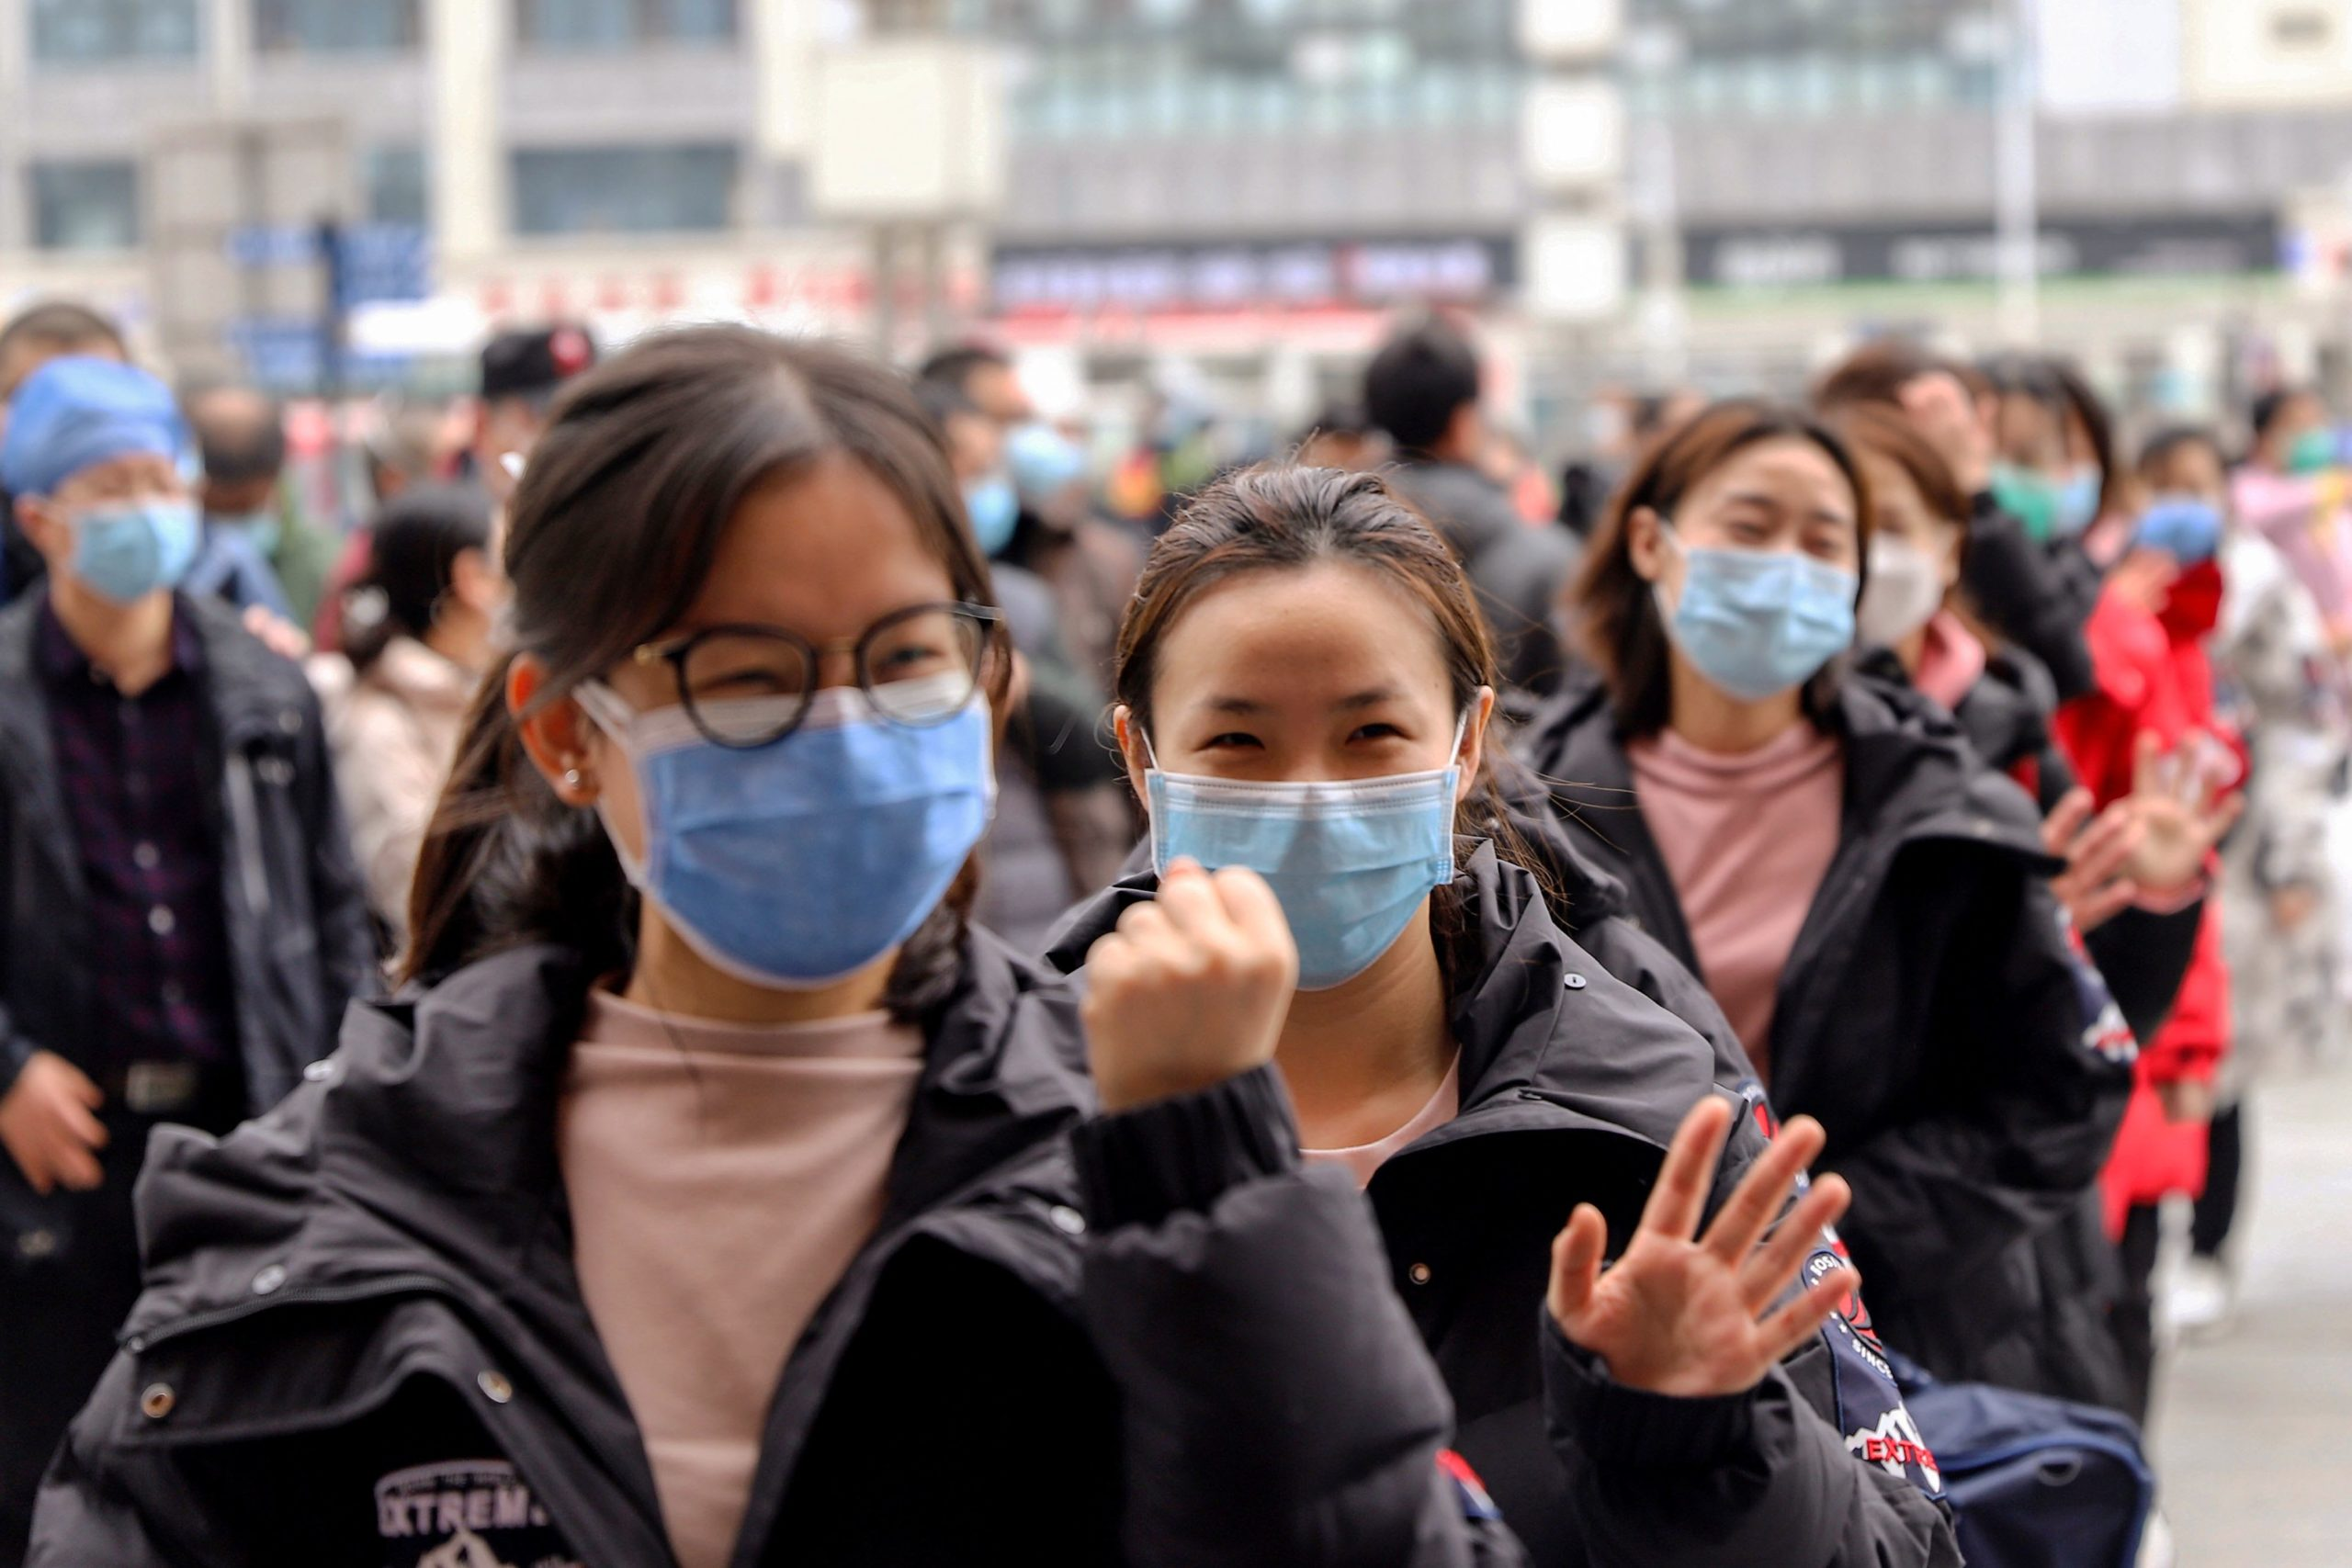 Policies From Asia Governments for the Health of Tourism Industry During and After Sars-Cov-2 Pandemic